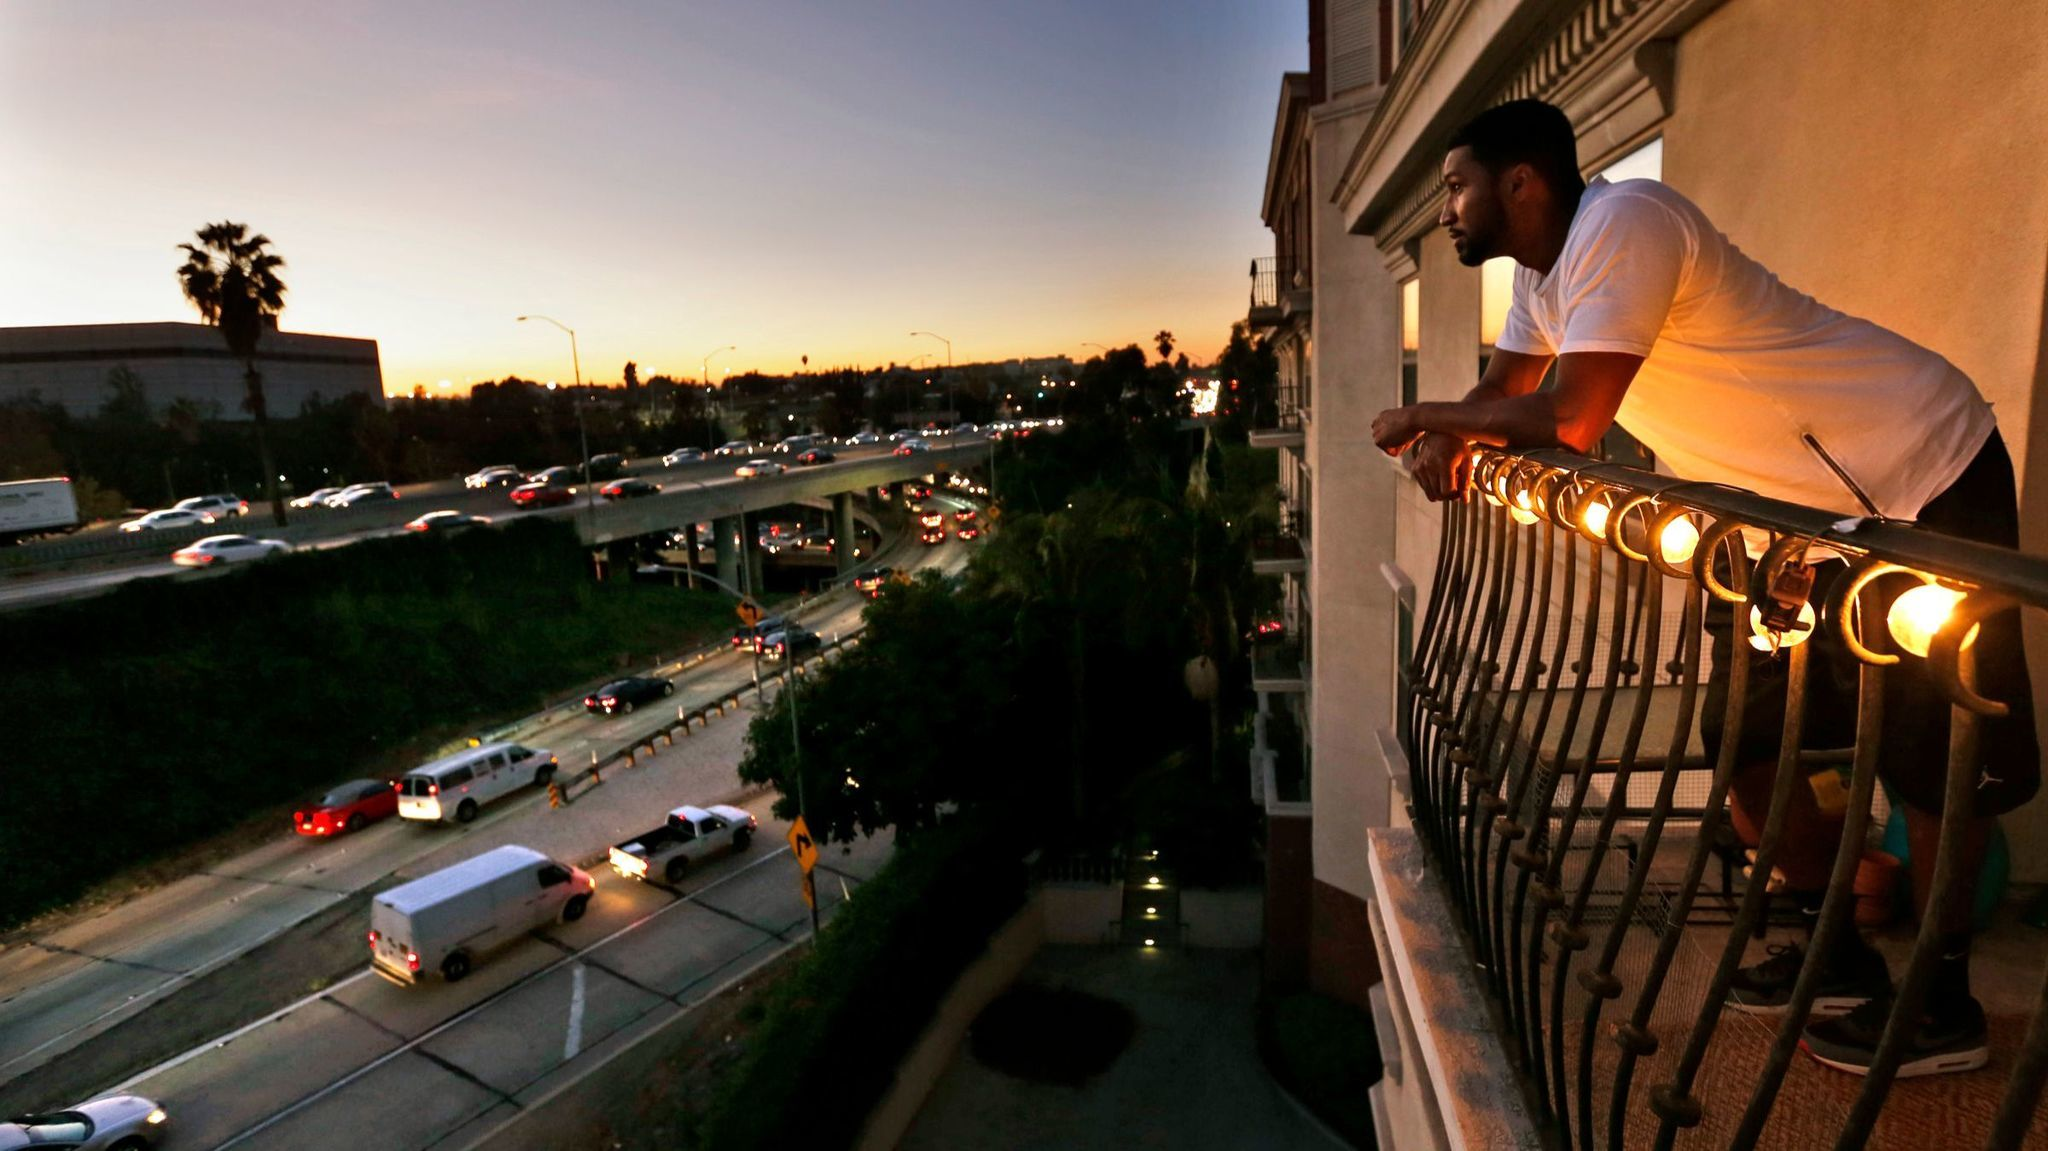 NOVEMBER 18, 2015. LOS ANGELES, CA. Everett Smith, 30, a renter at The Orsini apartments looks out